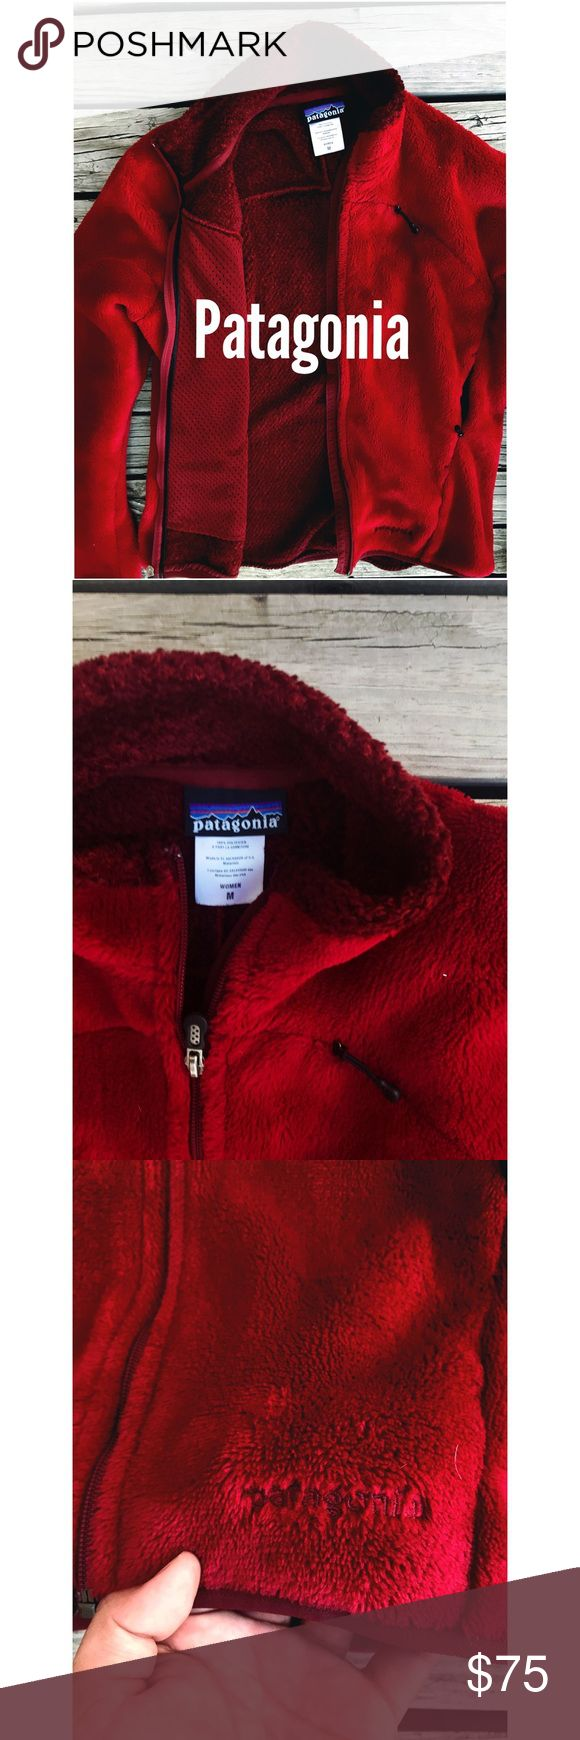 Woman's Patagonia fleece jacket Woman's fleece jacket by Patagonia. Ruby red color. Super soft material. Woman's size Medium. Very good condition. Patagonia Jackets & Coats